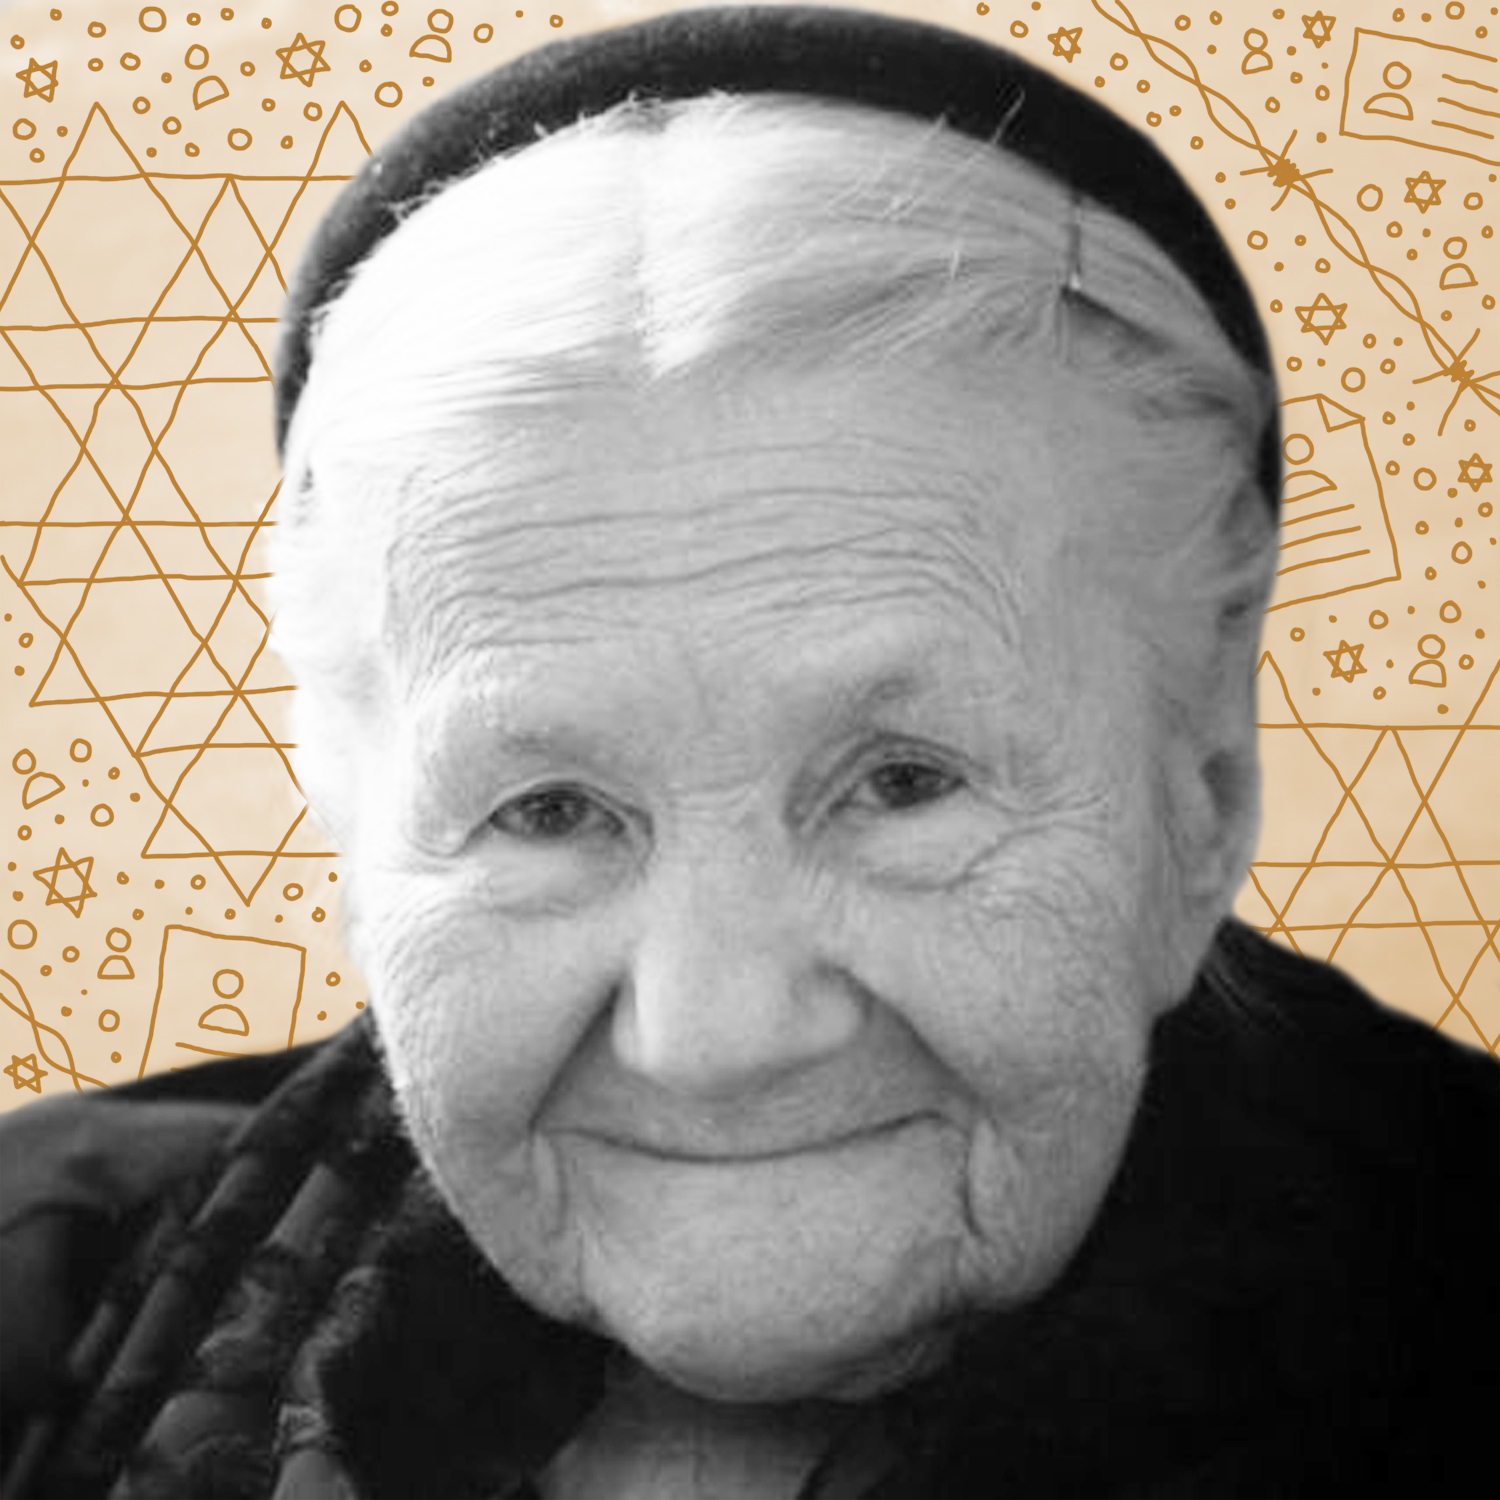 Irena Sendler   Sendler is responsible for smuggling approximately 2,500 Jewish children out of the Warsaw Ghetto and providing them with false identity documents and shelter,saving those children from the Holocaust. With the exception of diplomats who issued visas to help Jews flee Nazi-occupied Europe, Sendler saved more Jews than any other individual during the Holocaust.